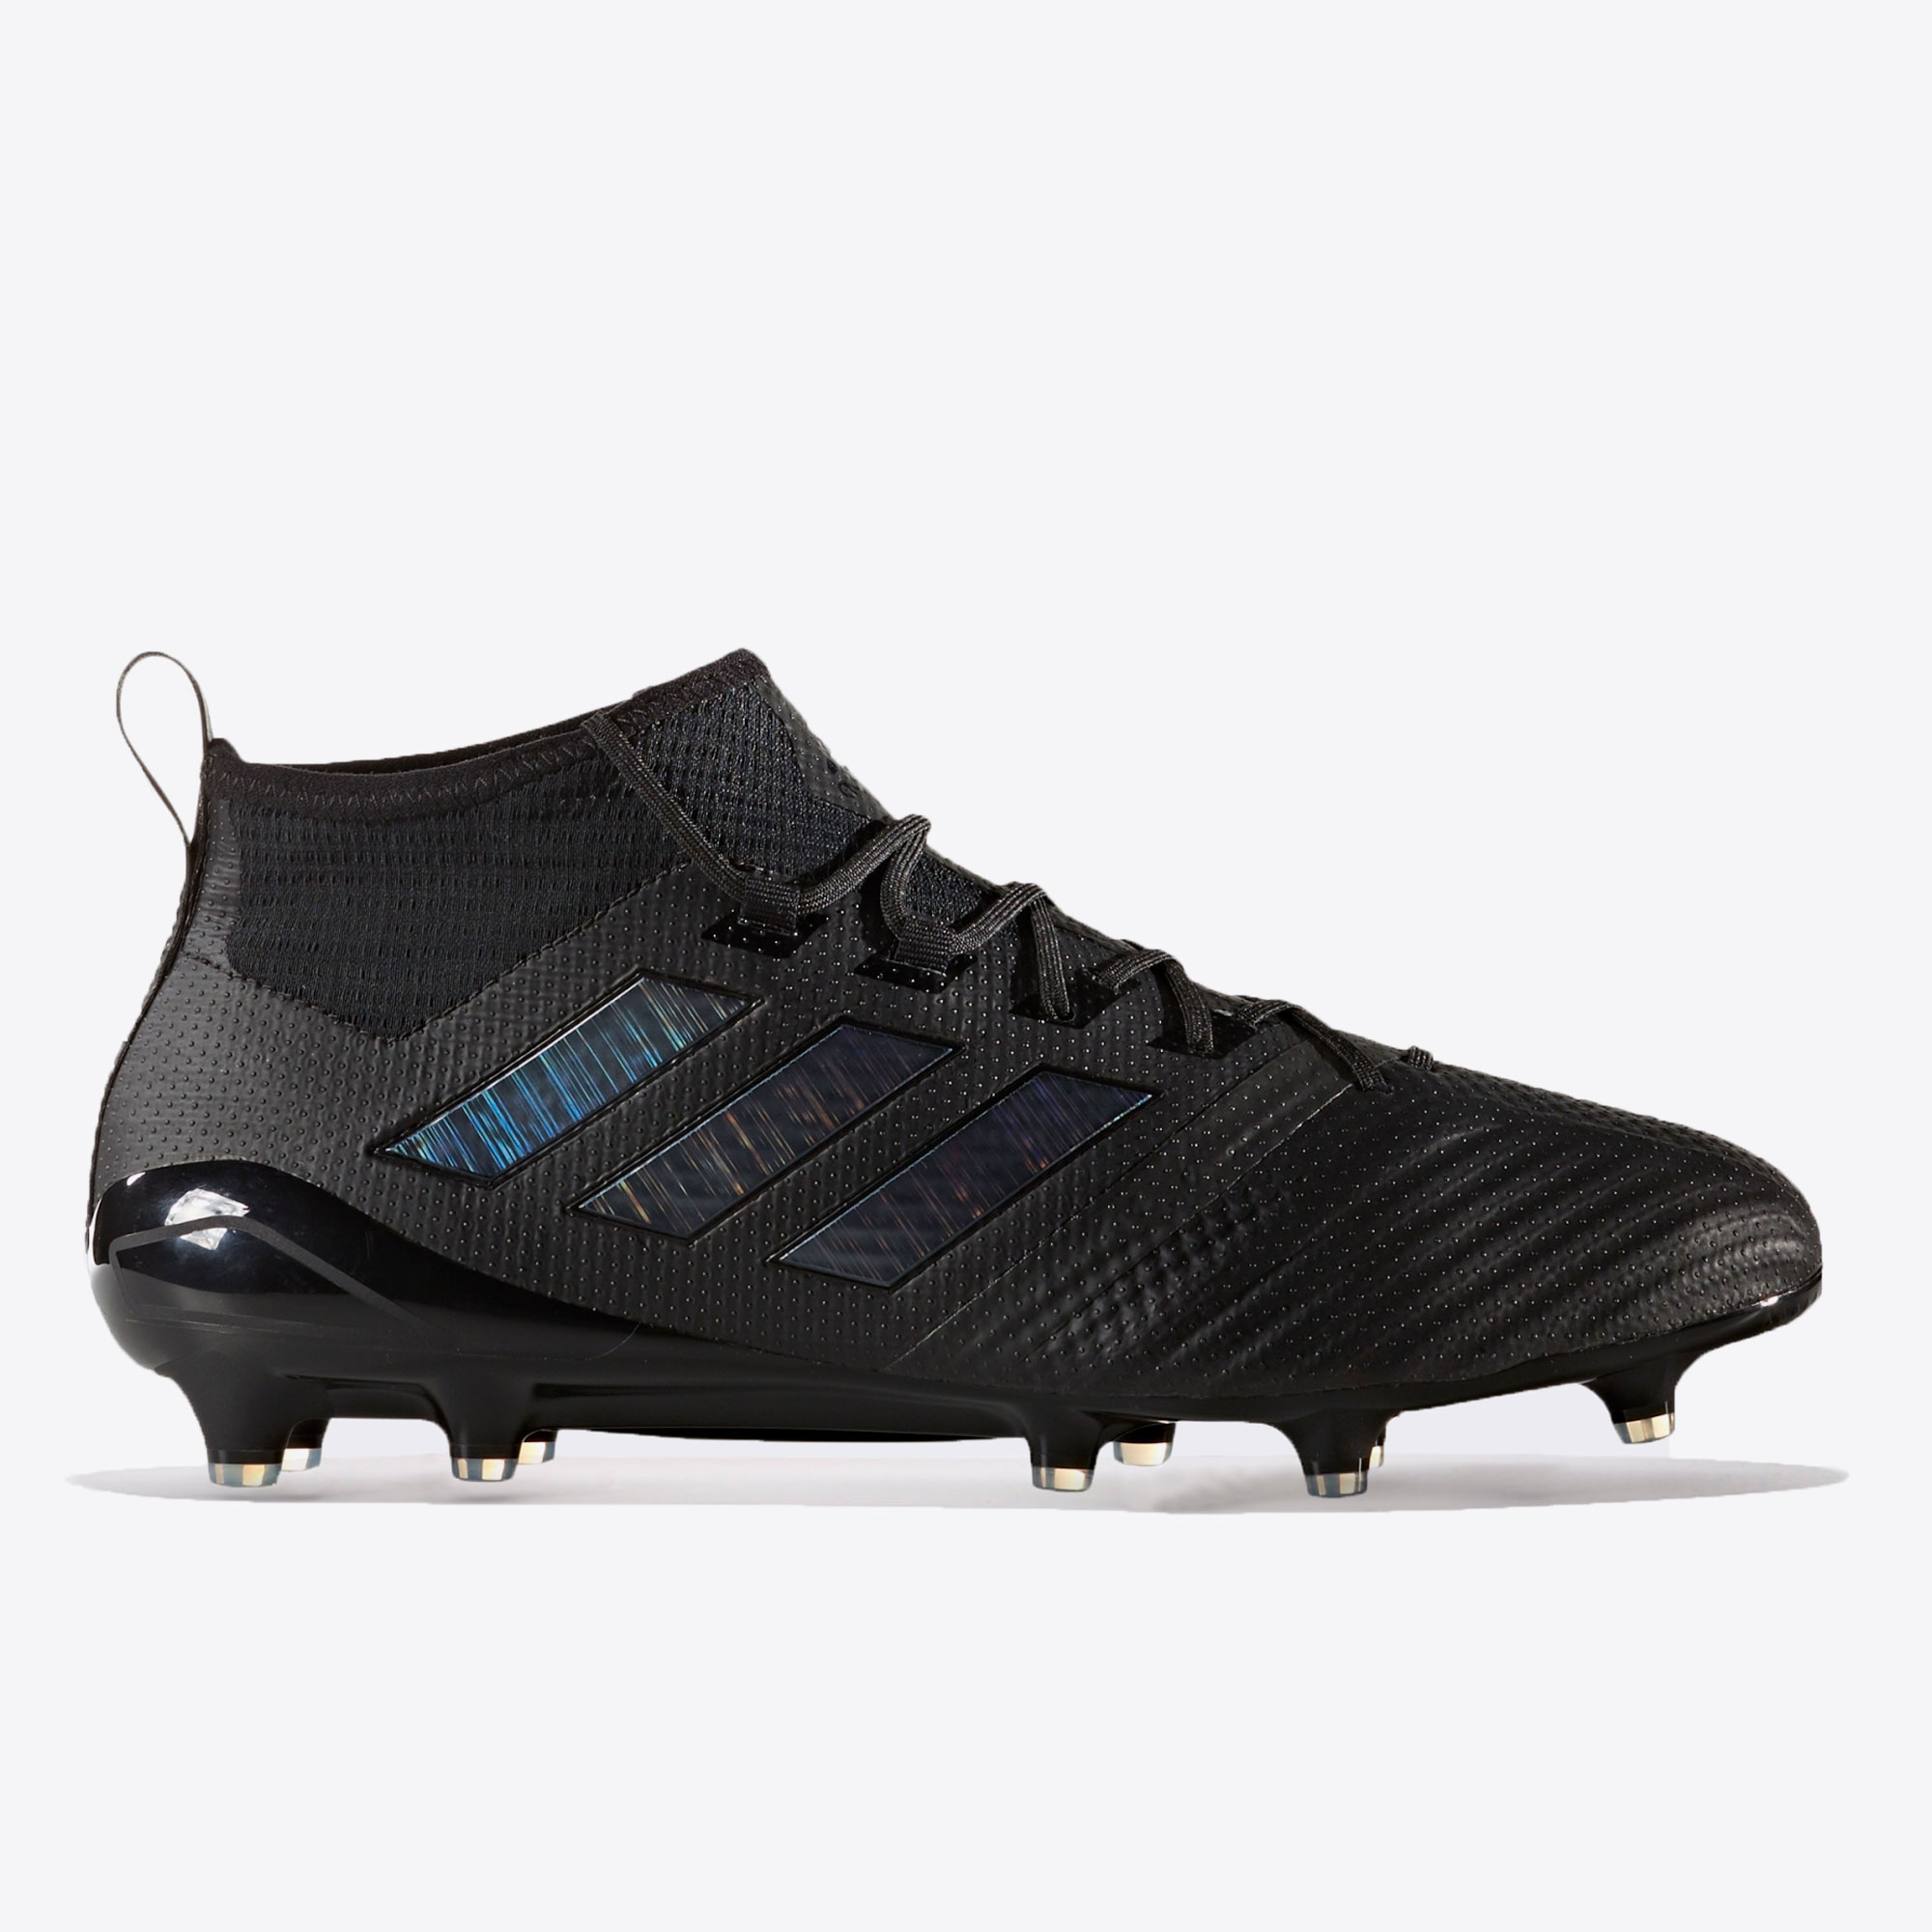 Image of adidas Ace 17.1 Firm Ground Football Boots - Core Black/Core Black/Uti